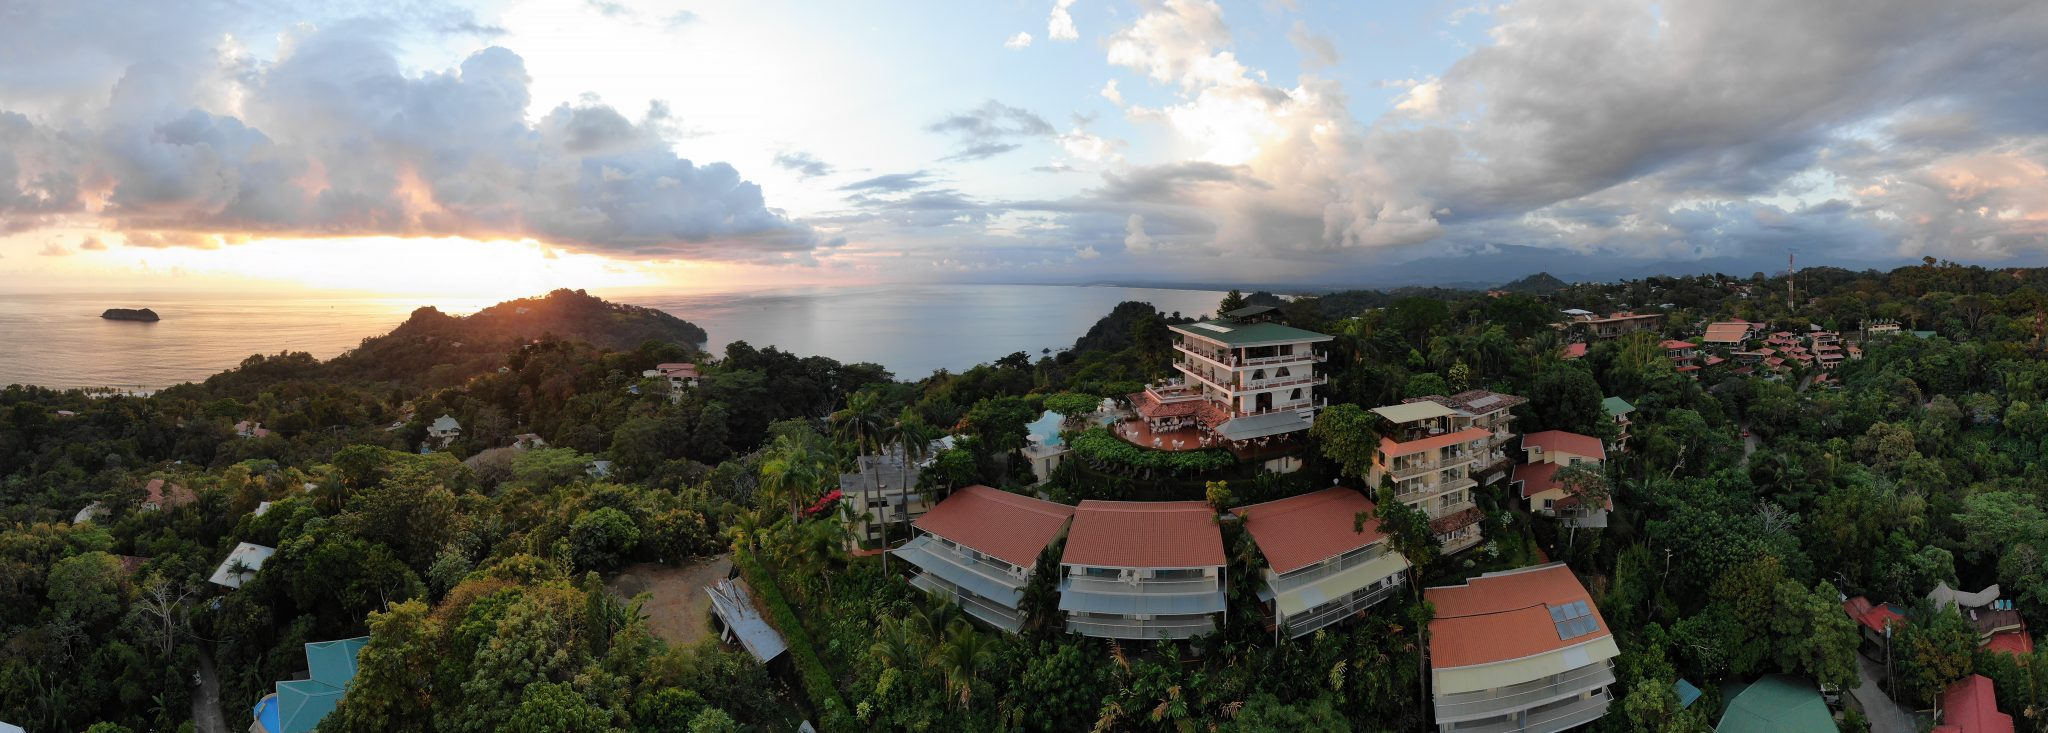 are-you-looking-the-best-places-to-stay-in-manuel-antonio